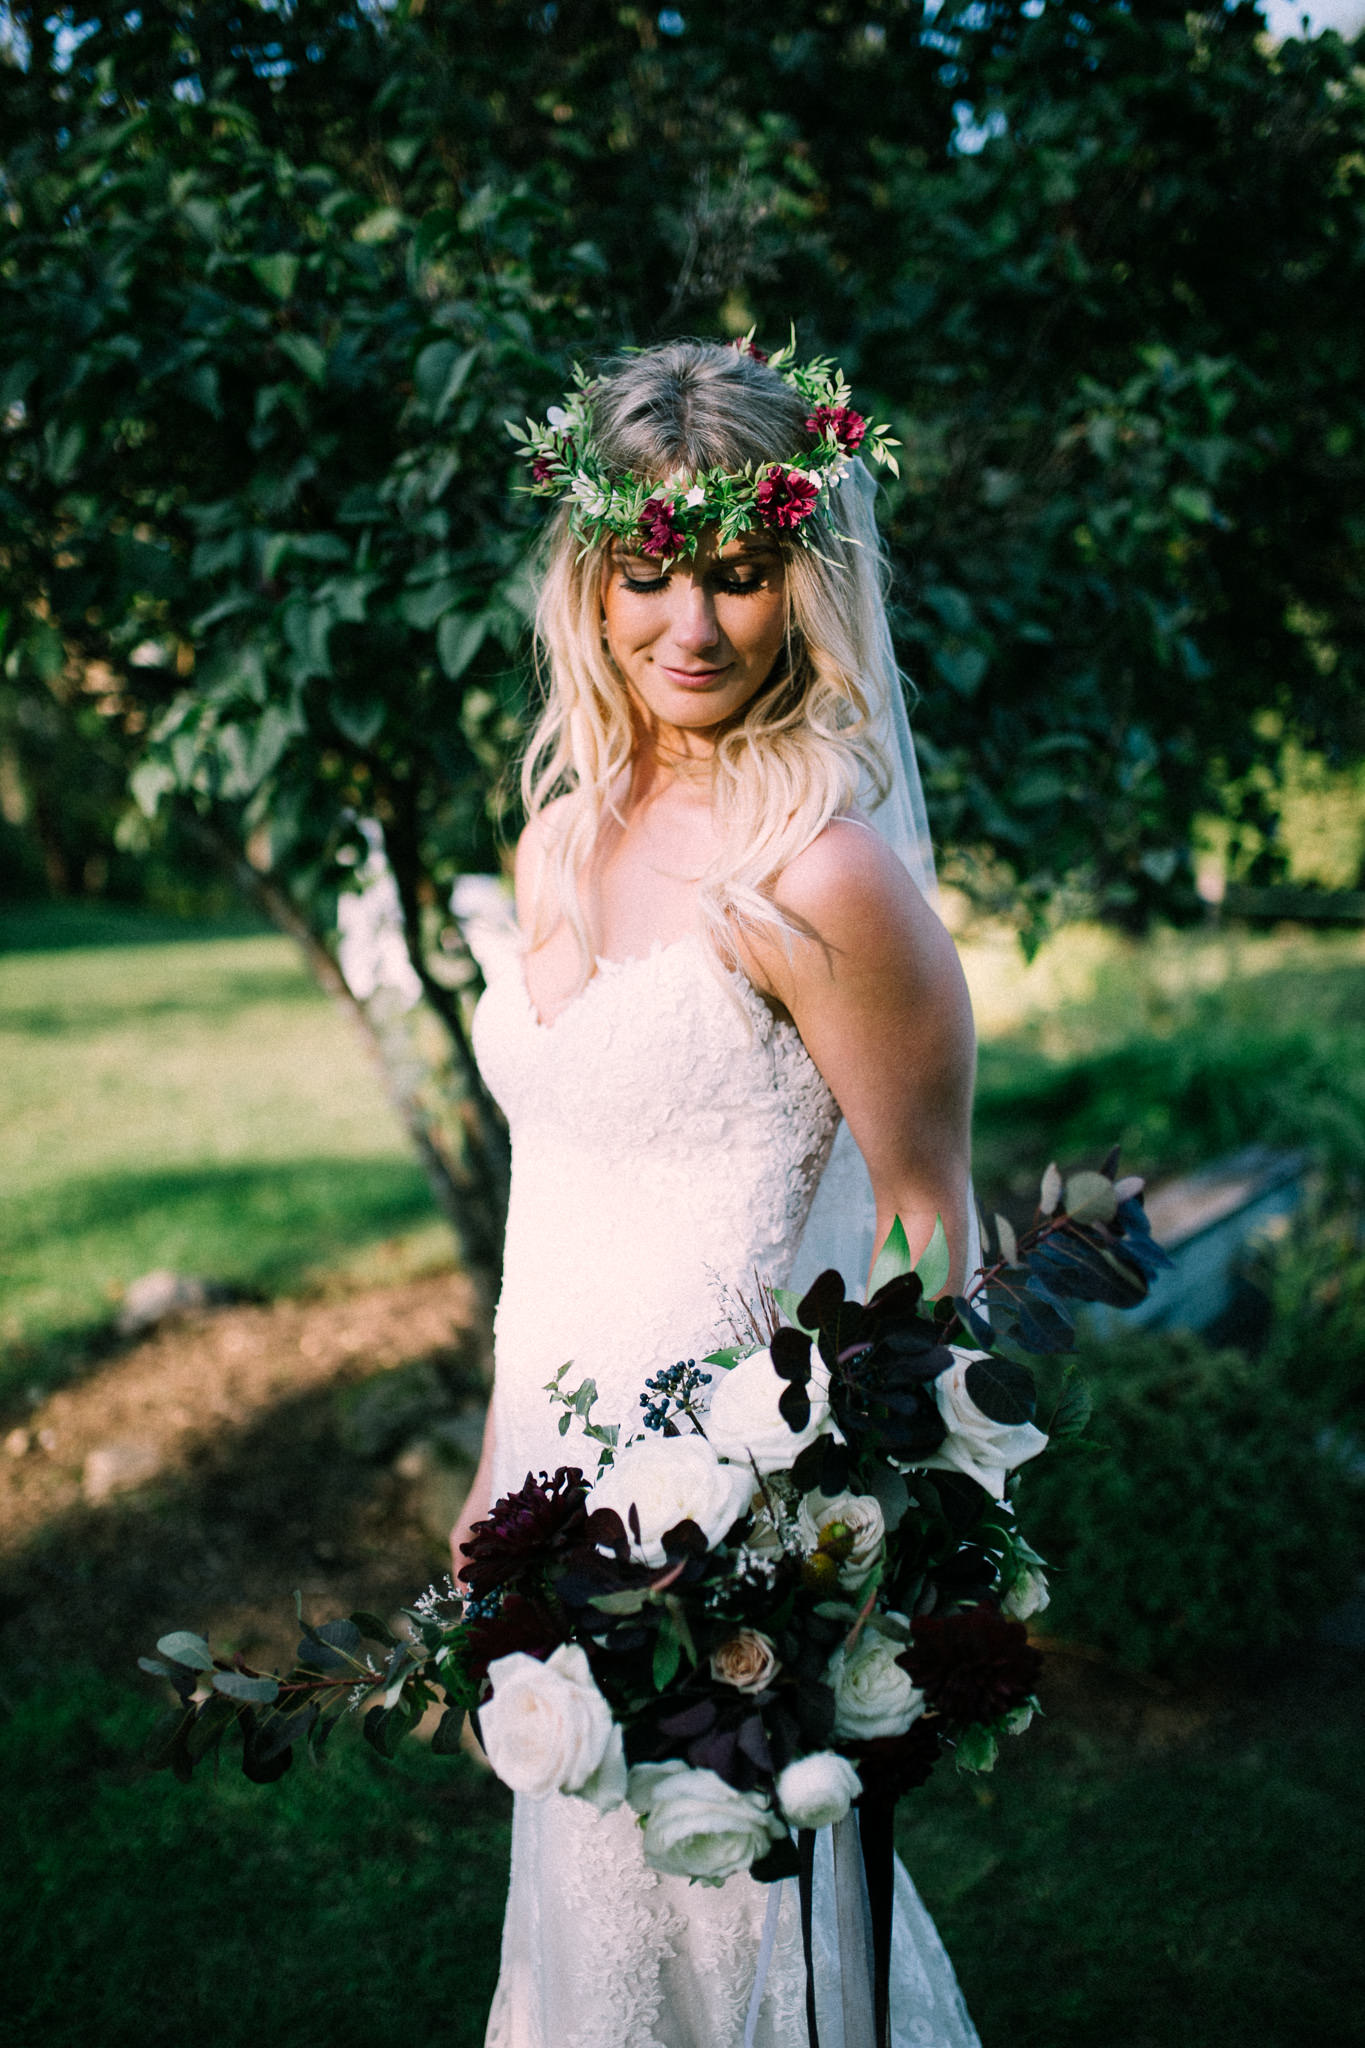 Muskoka lakeside wedding at Port Cunnington Lodge by Max Wong Photo (39)